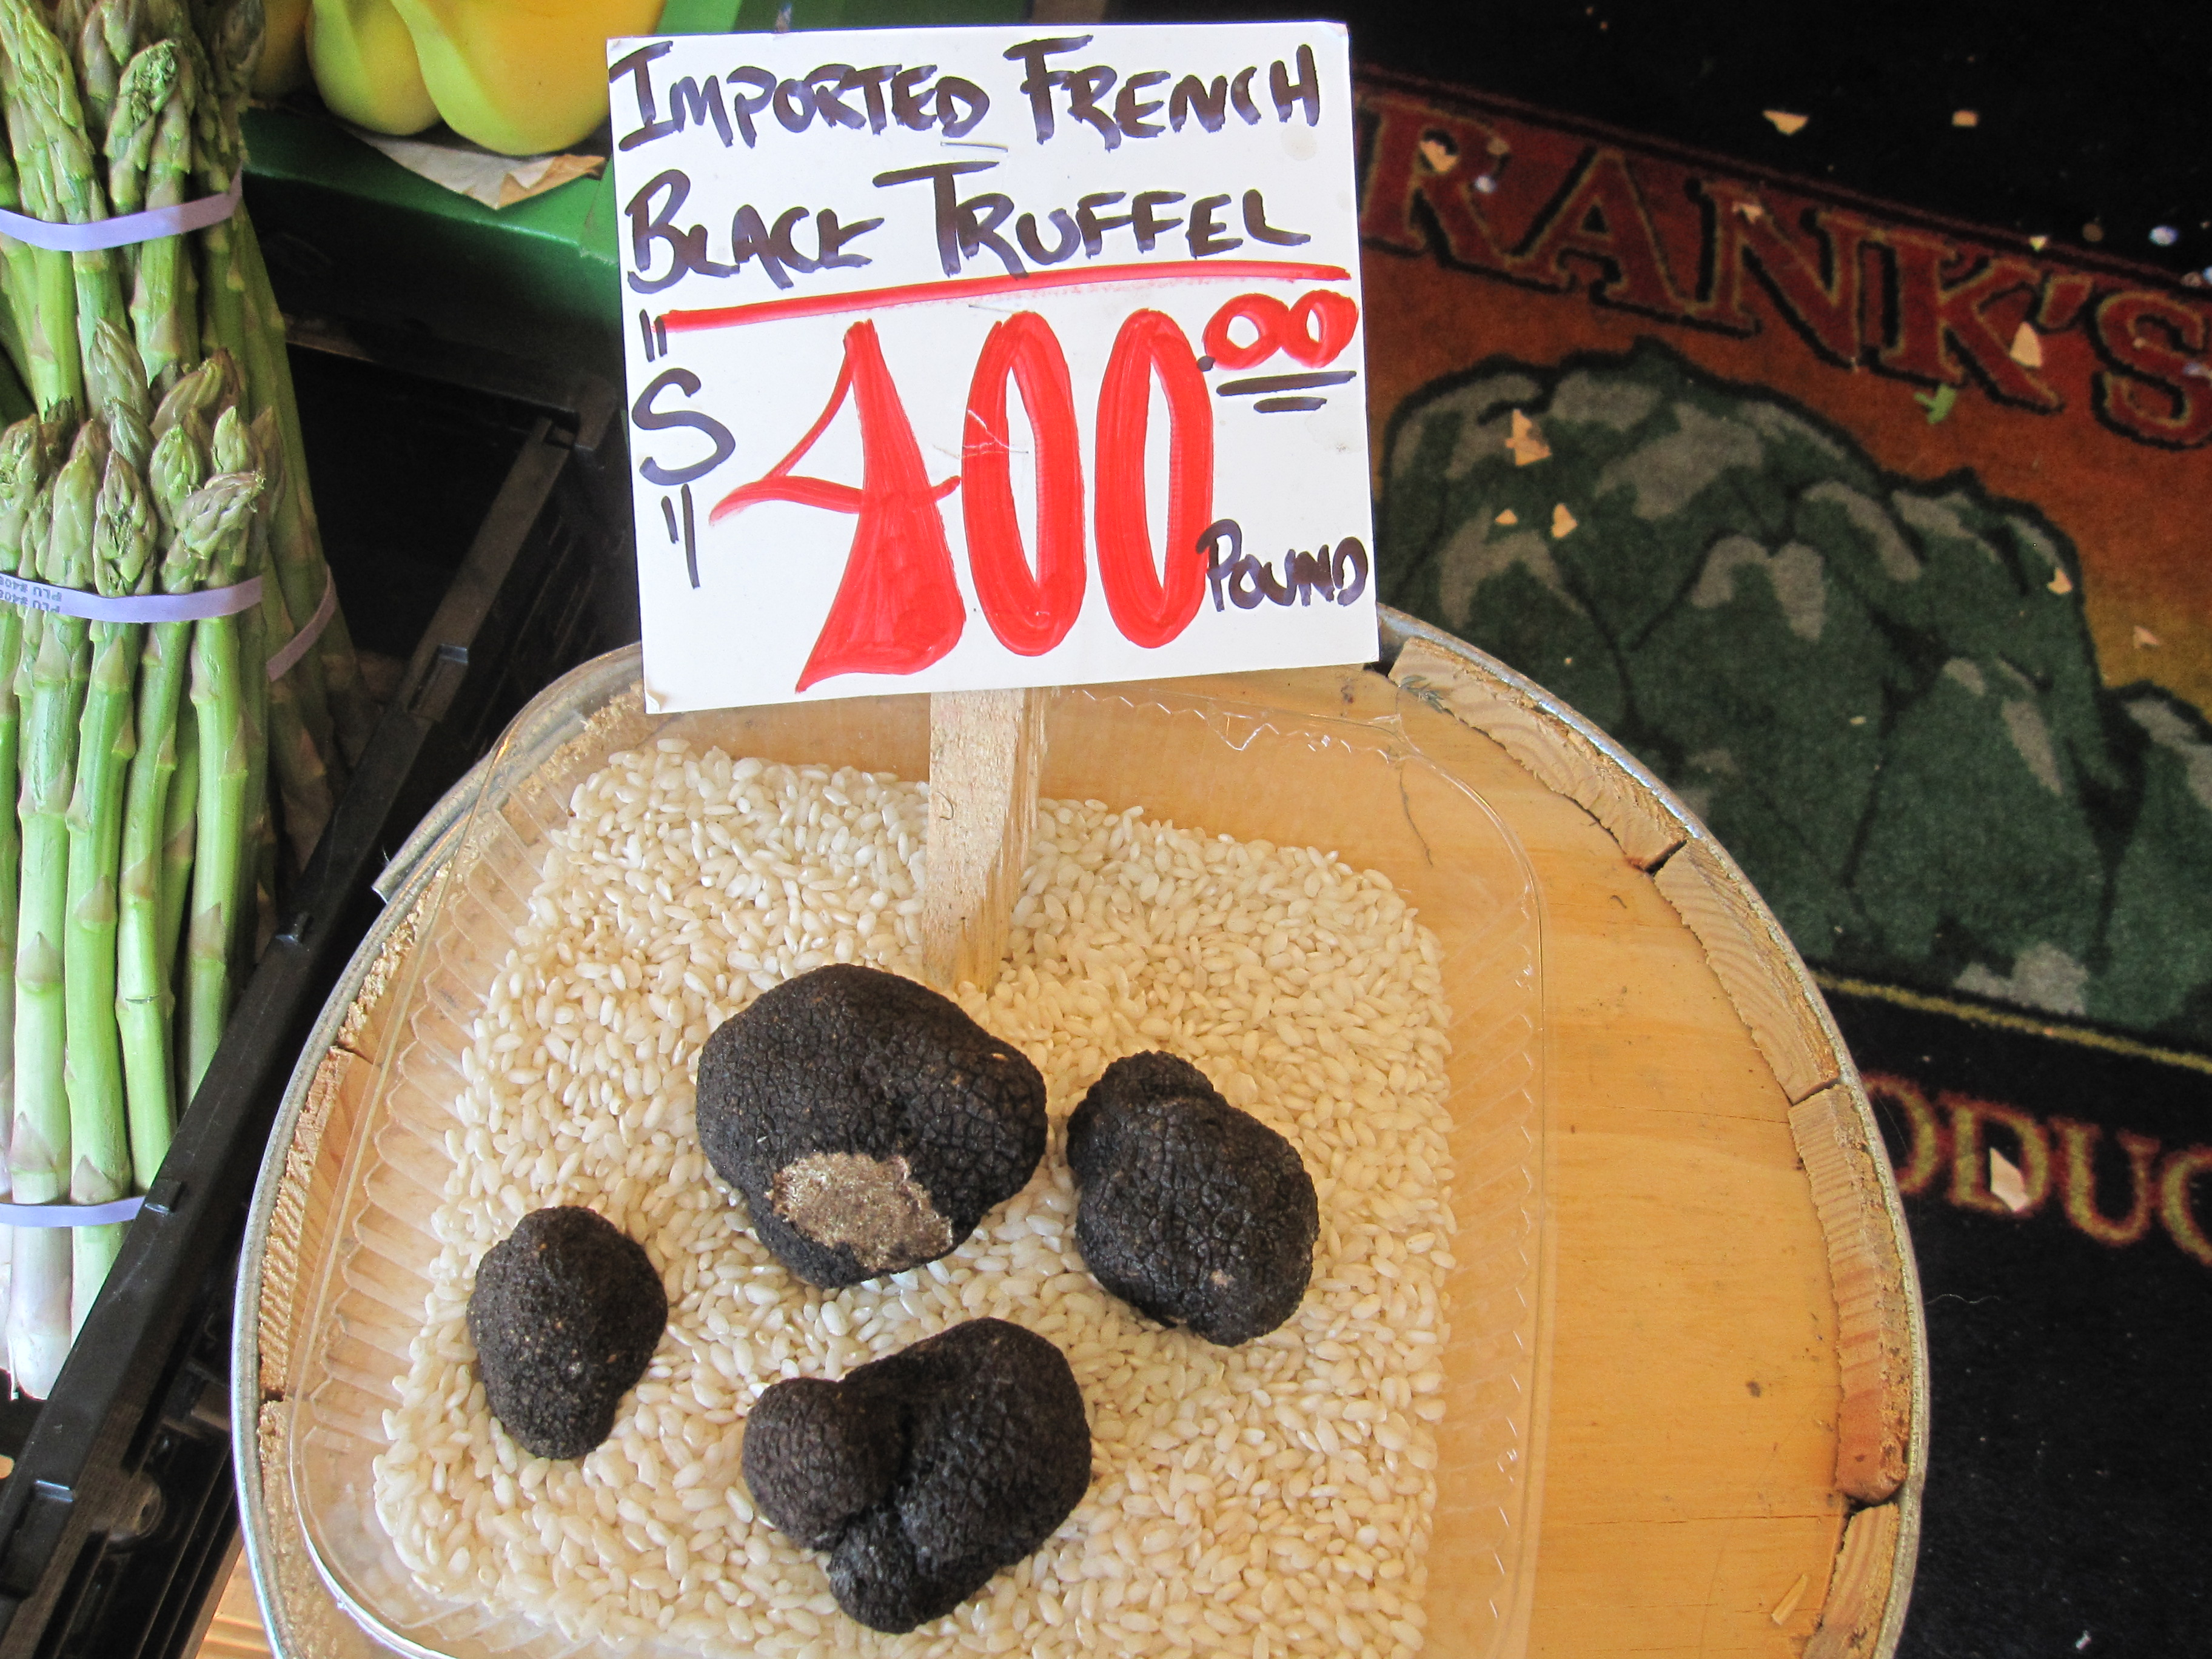 Expensive Truffles at Seattle's Pike Place Market